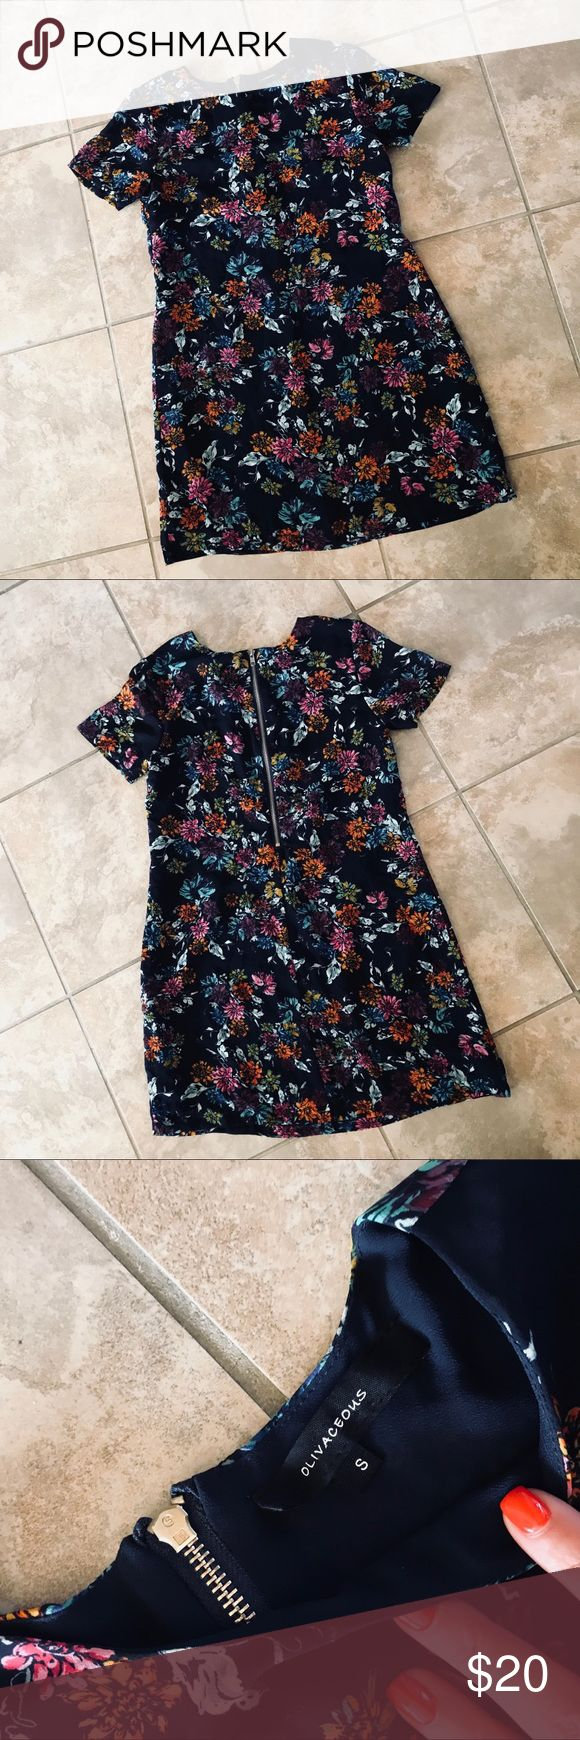 FLORAL CHIFON DRESS Navy blue with a bright floral pattern! So chic and so cute for summer or spring time ✨ Olivaceous Dresses Midi